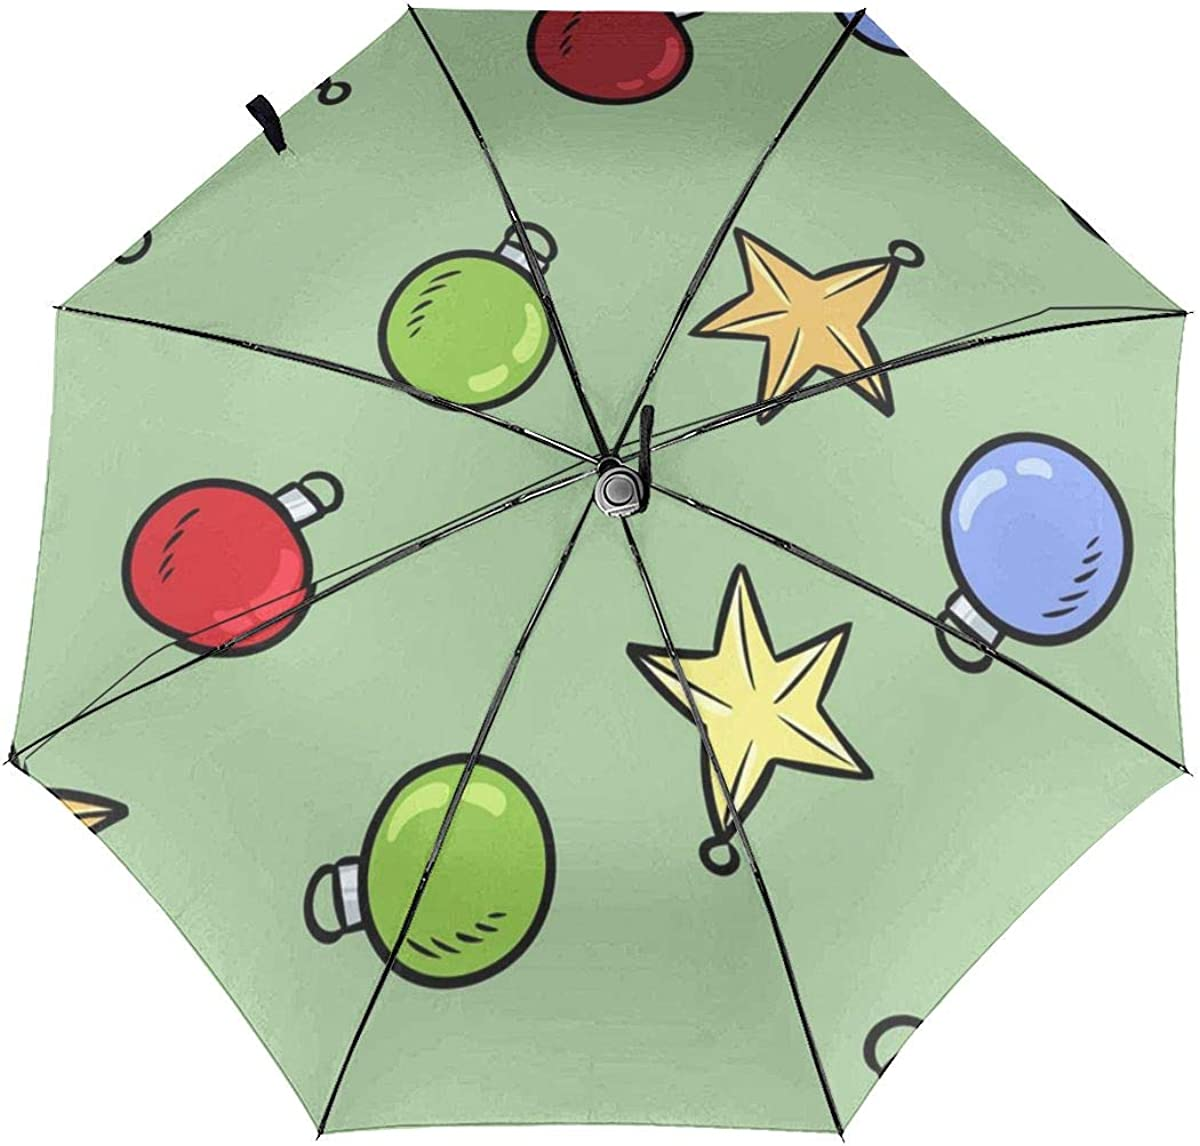 Colored Five-pointed Star And Light Bulb Compact Travel Umbrella Windproof Reinforced Canopy 8 Ribs Umbrella Auto Open And Close Button Personalized